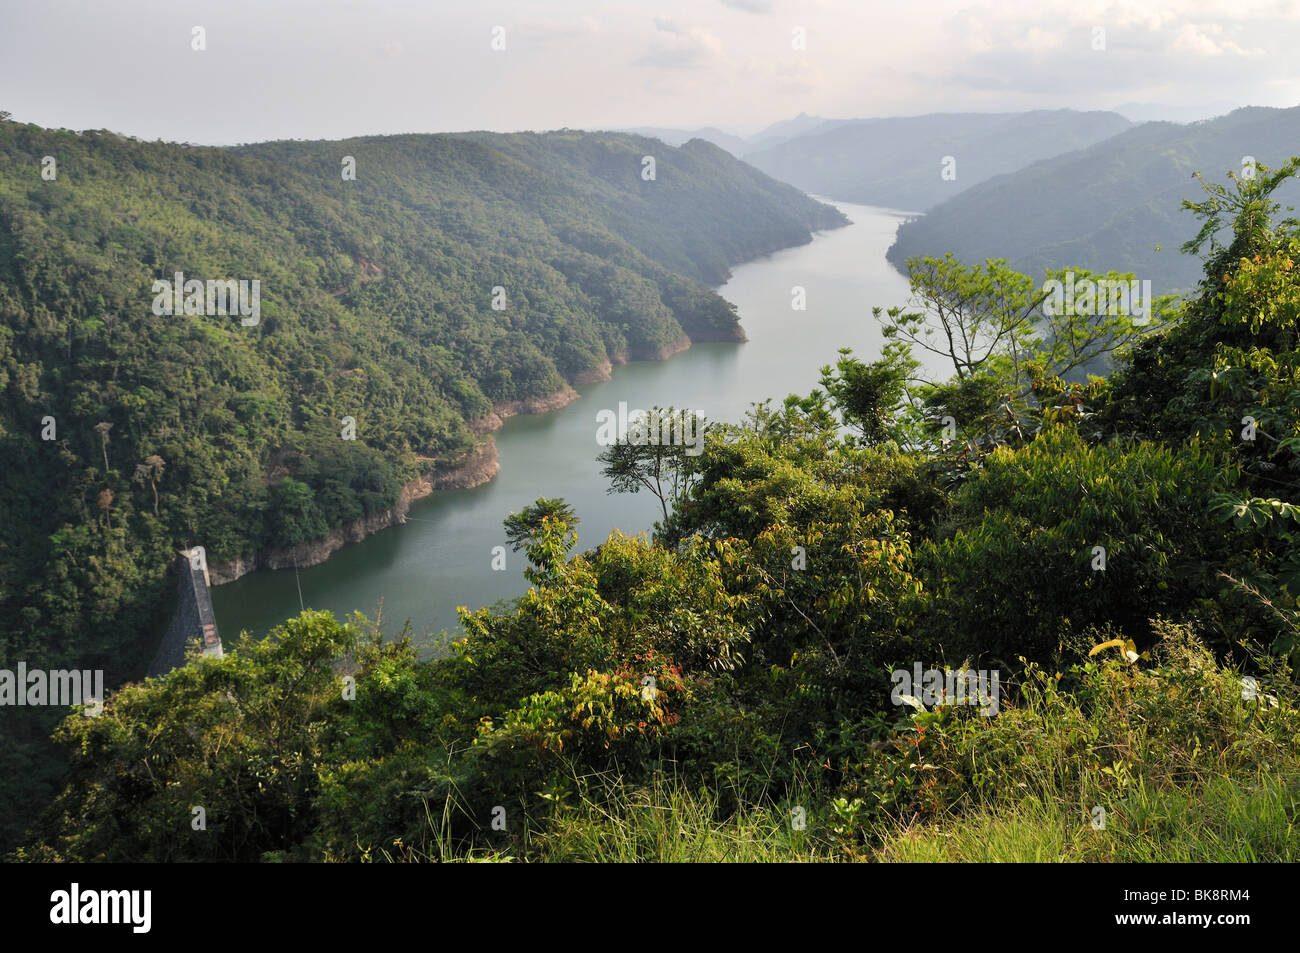 Hydroelectric Power Plants In South America Not Lossing Wiring Diagram Reservoir Of The La Miel Plant Caldas Colombia Rh Alamy Com Dams